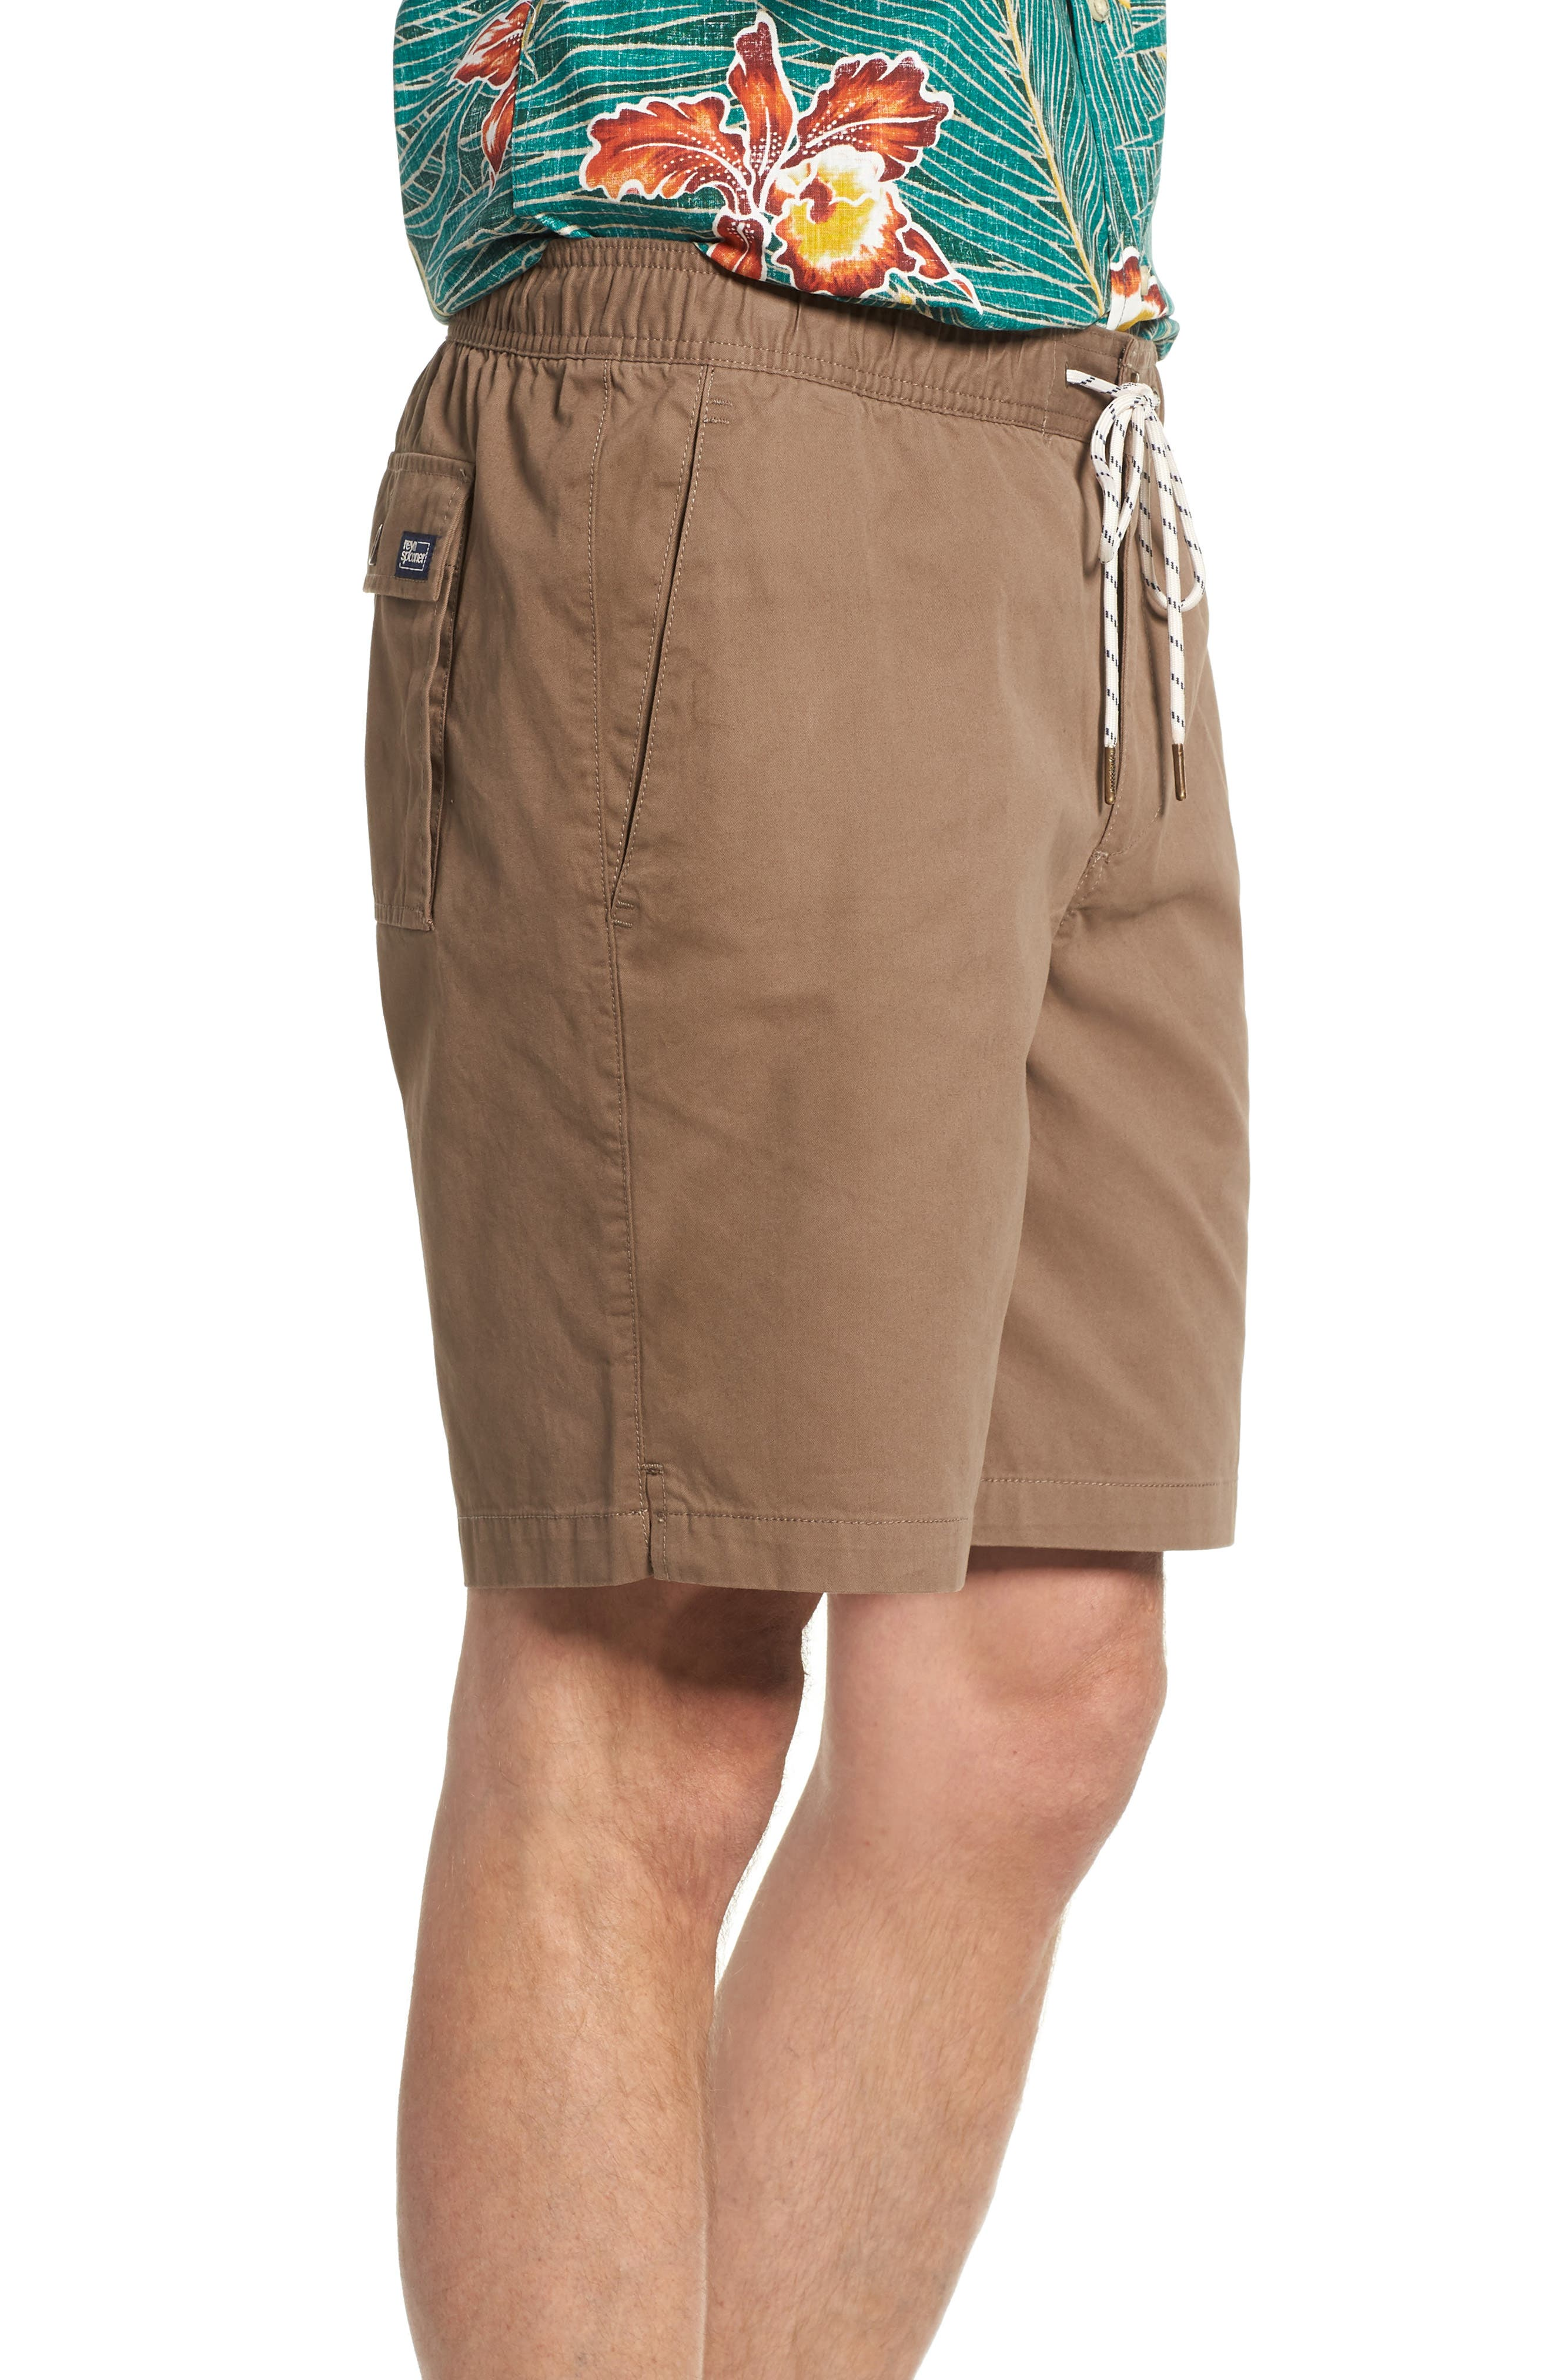 Alternate Image 3  - Reyn Spooner Beach Shorts